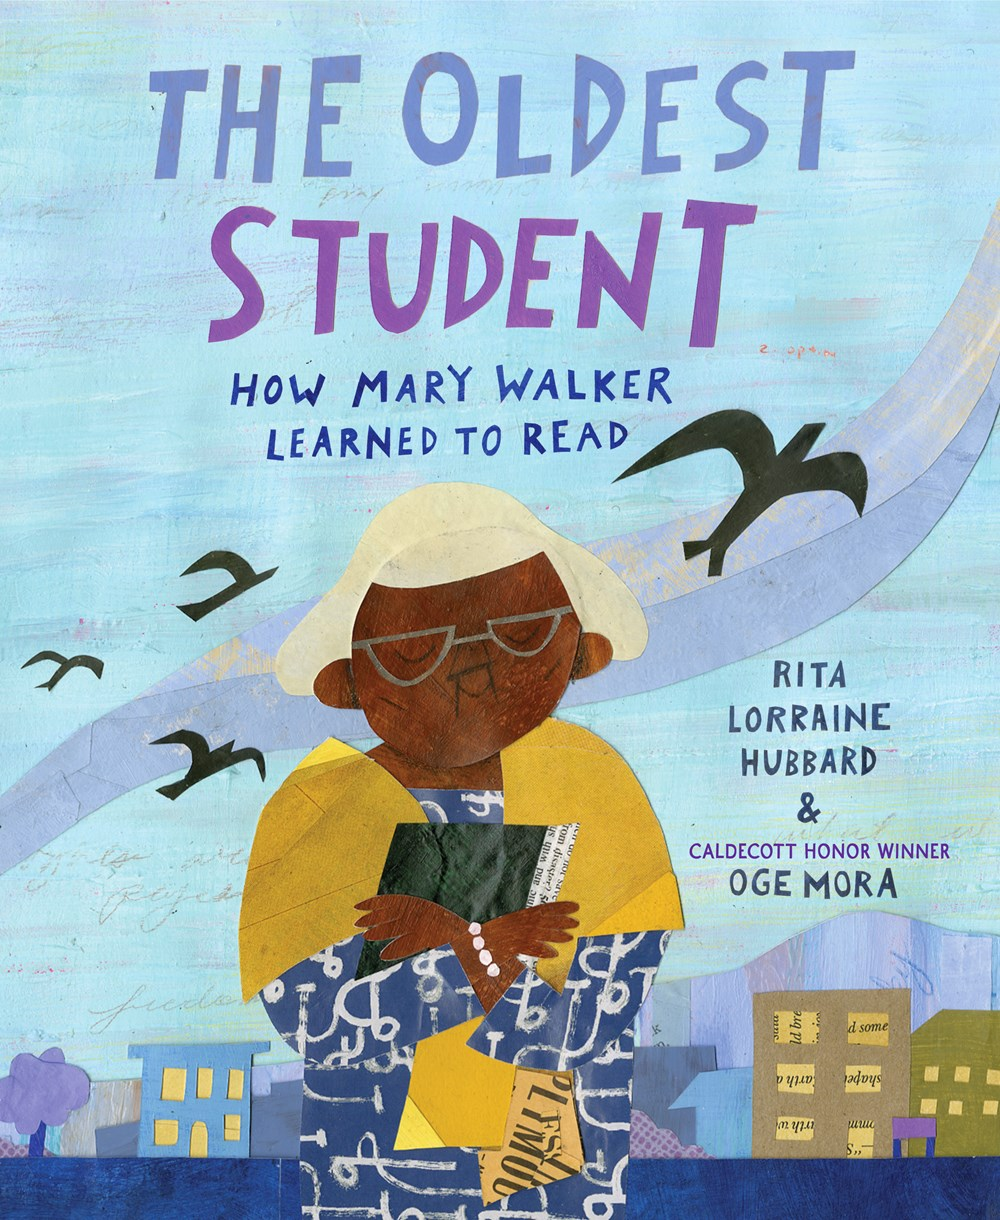 Review of The Oldest Student: How Mary Walker Learned to Read